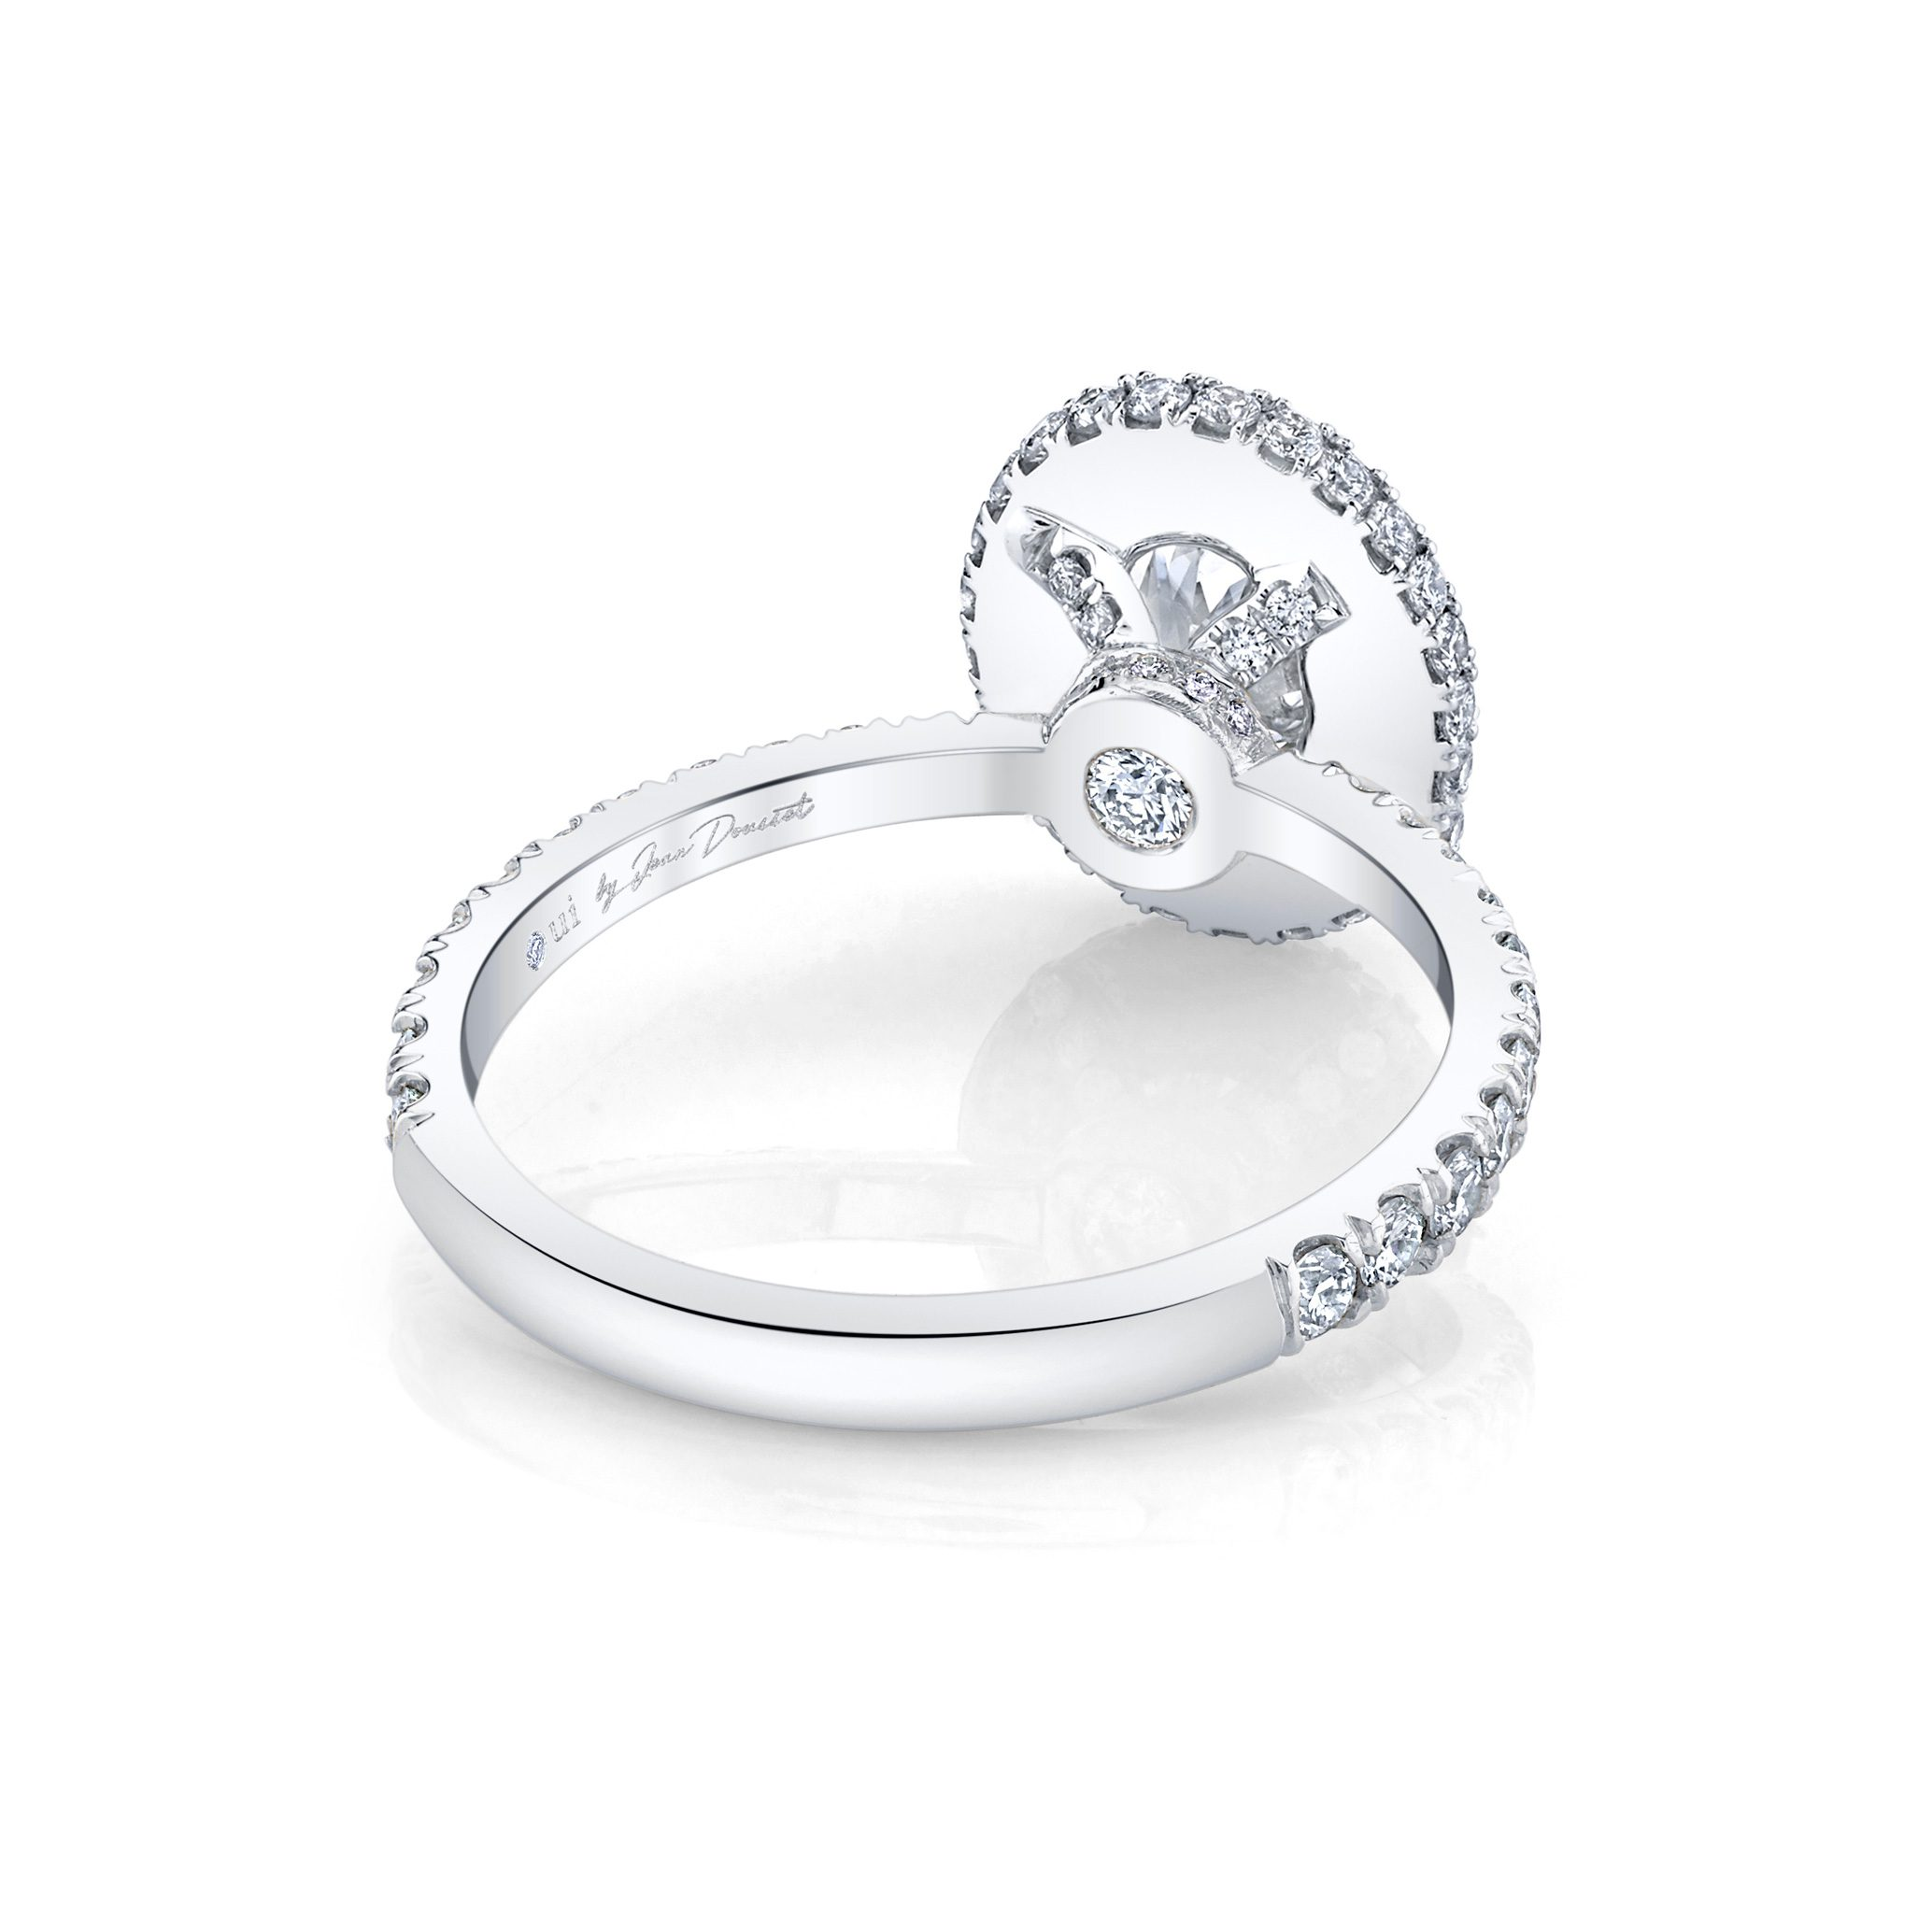 Eloise Oval Seamless Halo® Engagement Ring with diamond pavé in 18k White Gold Back View by Oui by Jean Dousset